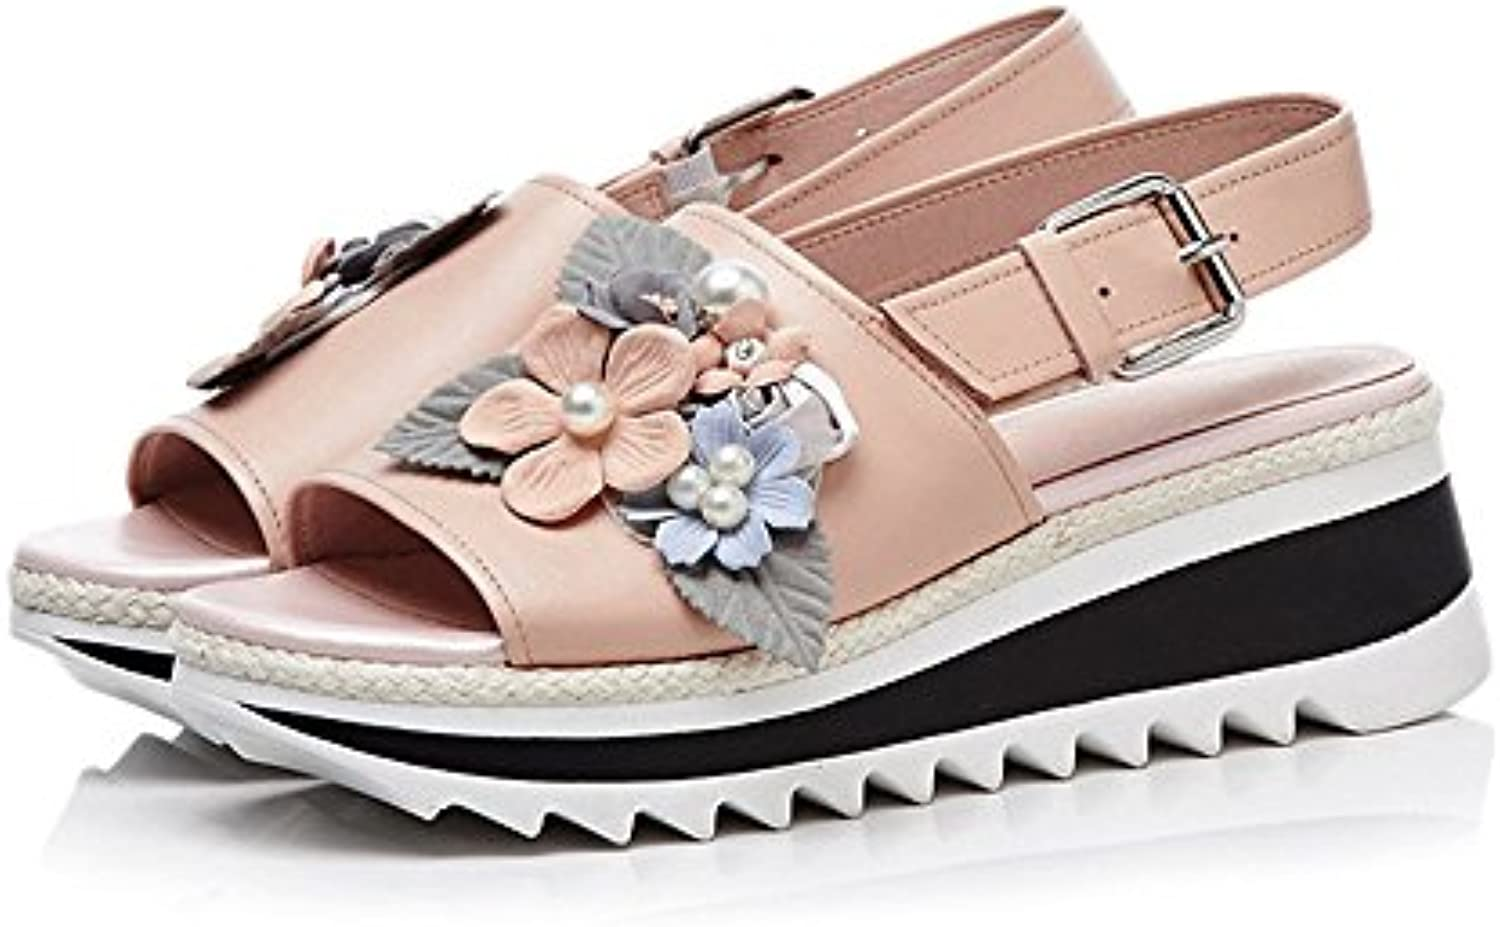 Summer Pearl Fish Flower Décoration Wedges à Semelles épaisses Fish Pearl Mouth  s en Cuir véritable (Couleur : Rose...B07HCYZLW2Parent 329a60